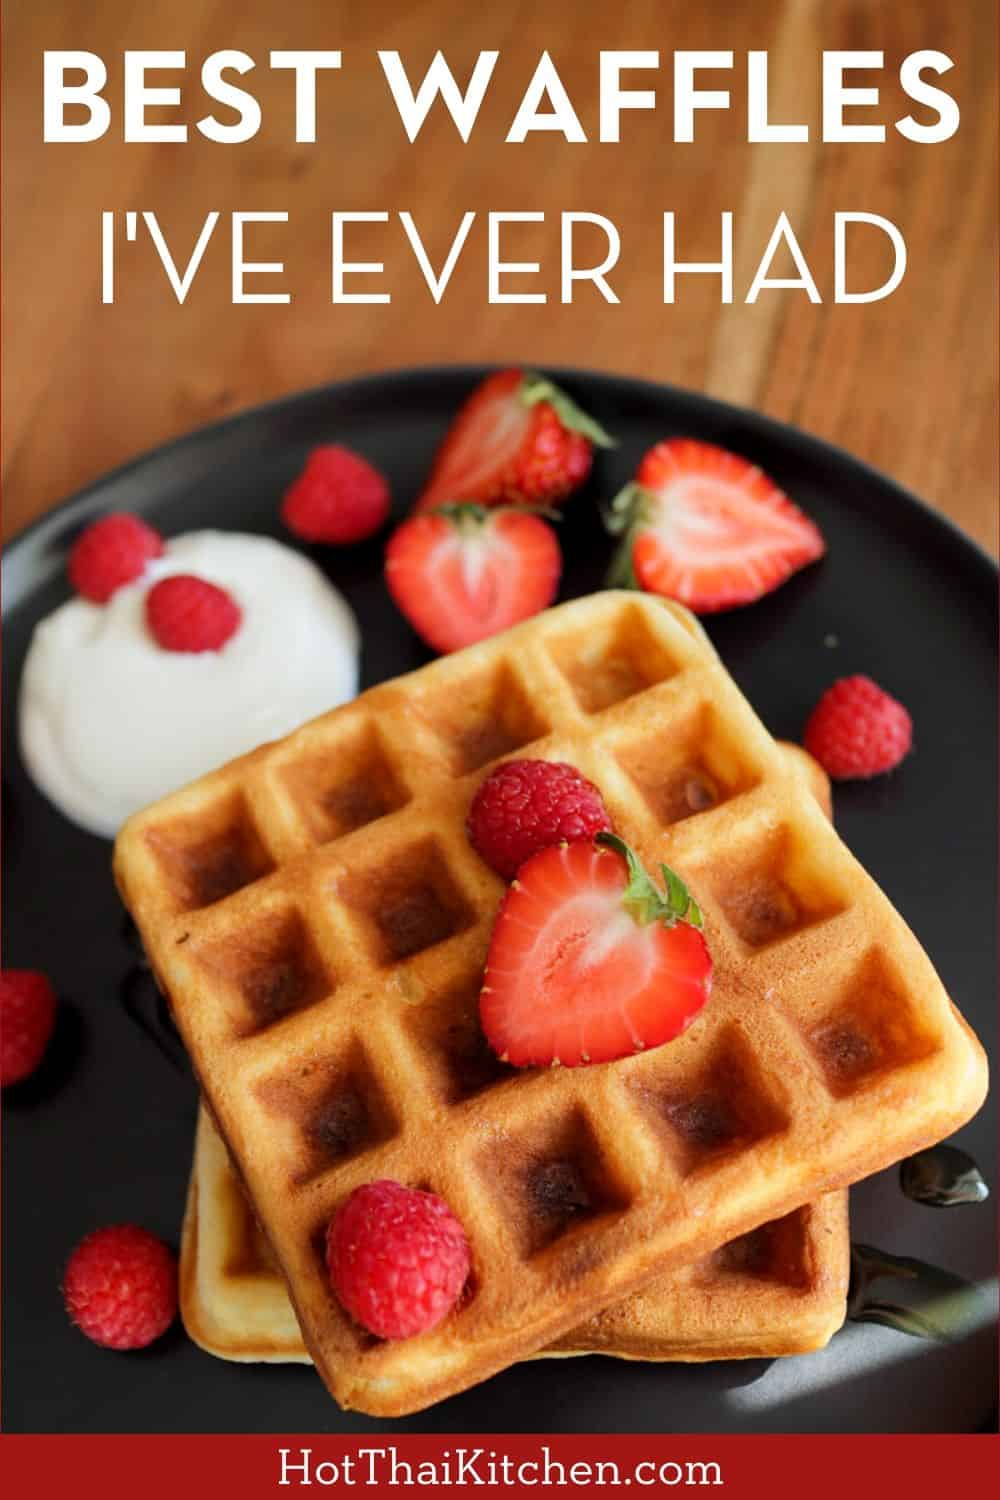 A secret ingredient makes these super crispy on the outside and moist and fluffy on the inside. They're so easy and freeze well! #waffles #breakfastrecipe